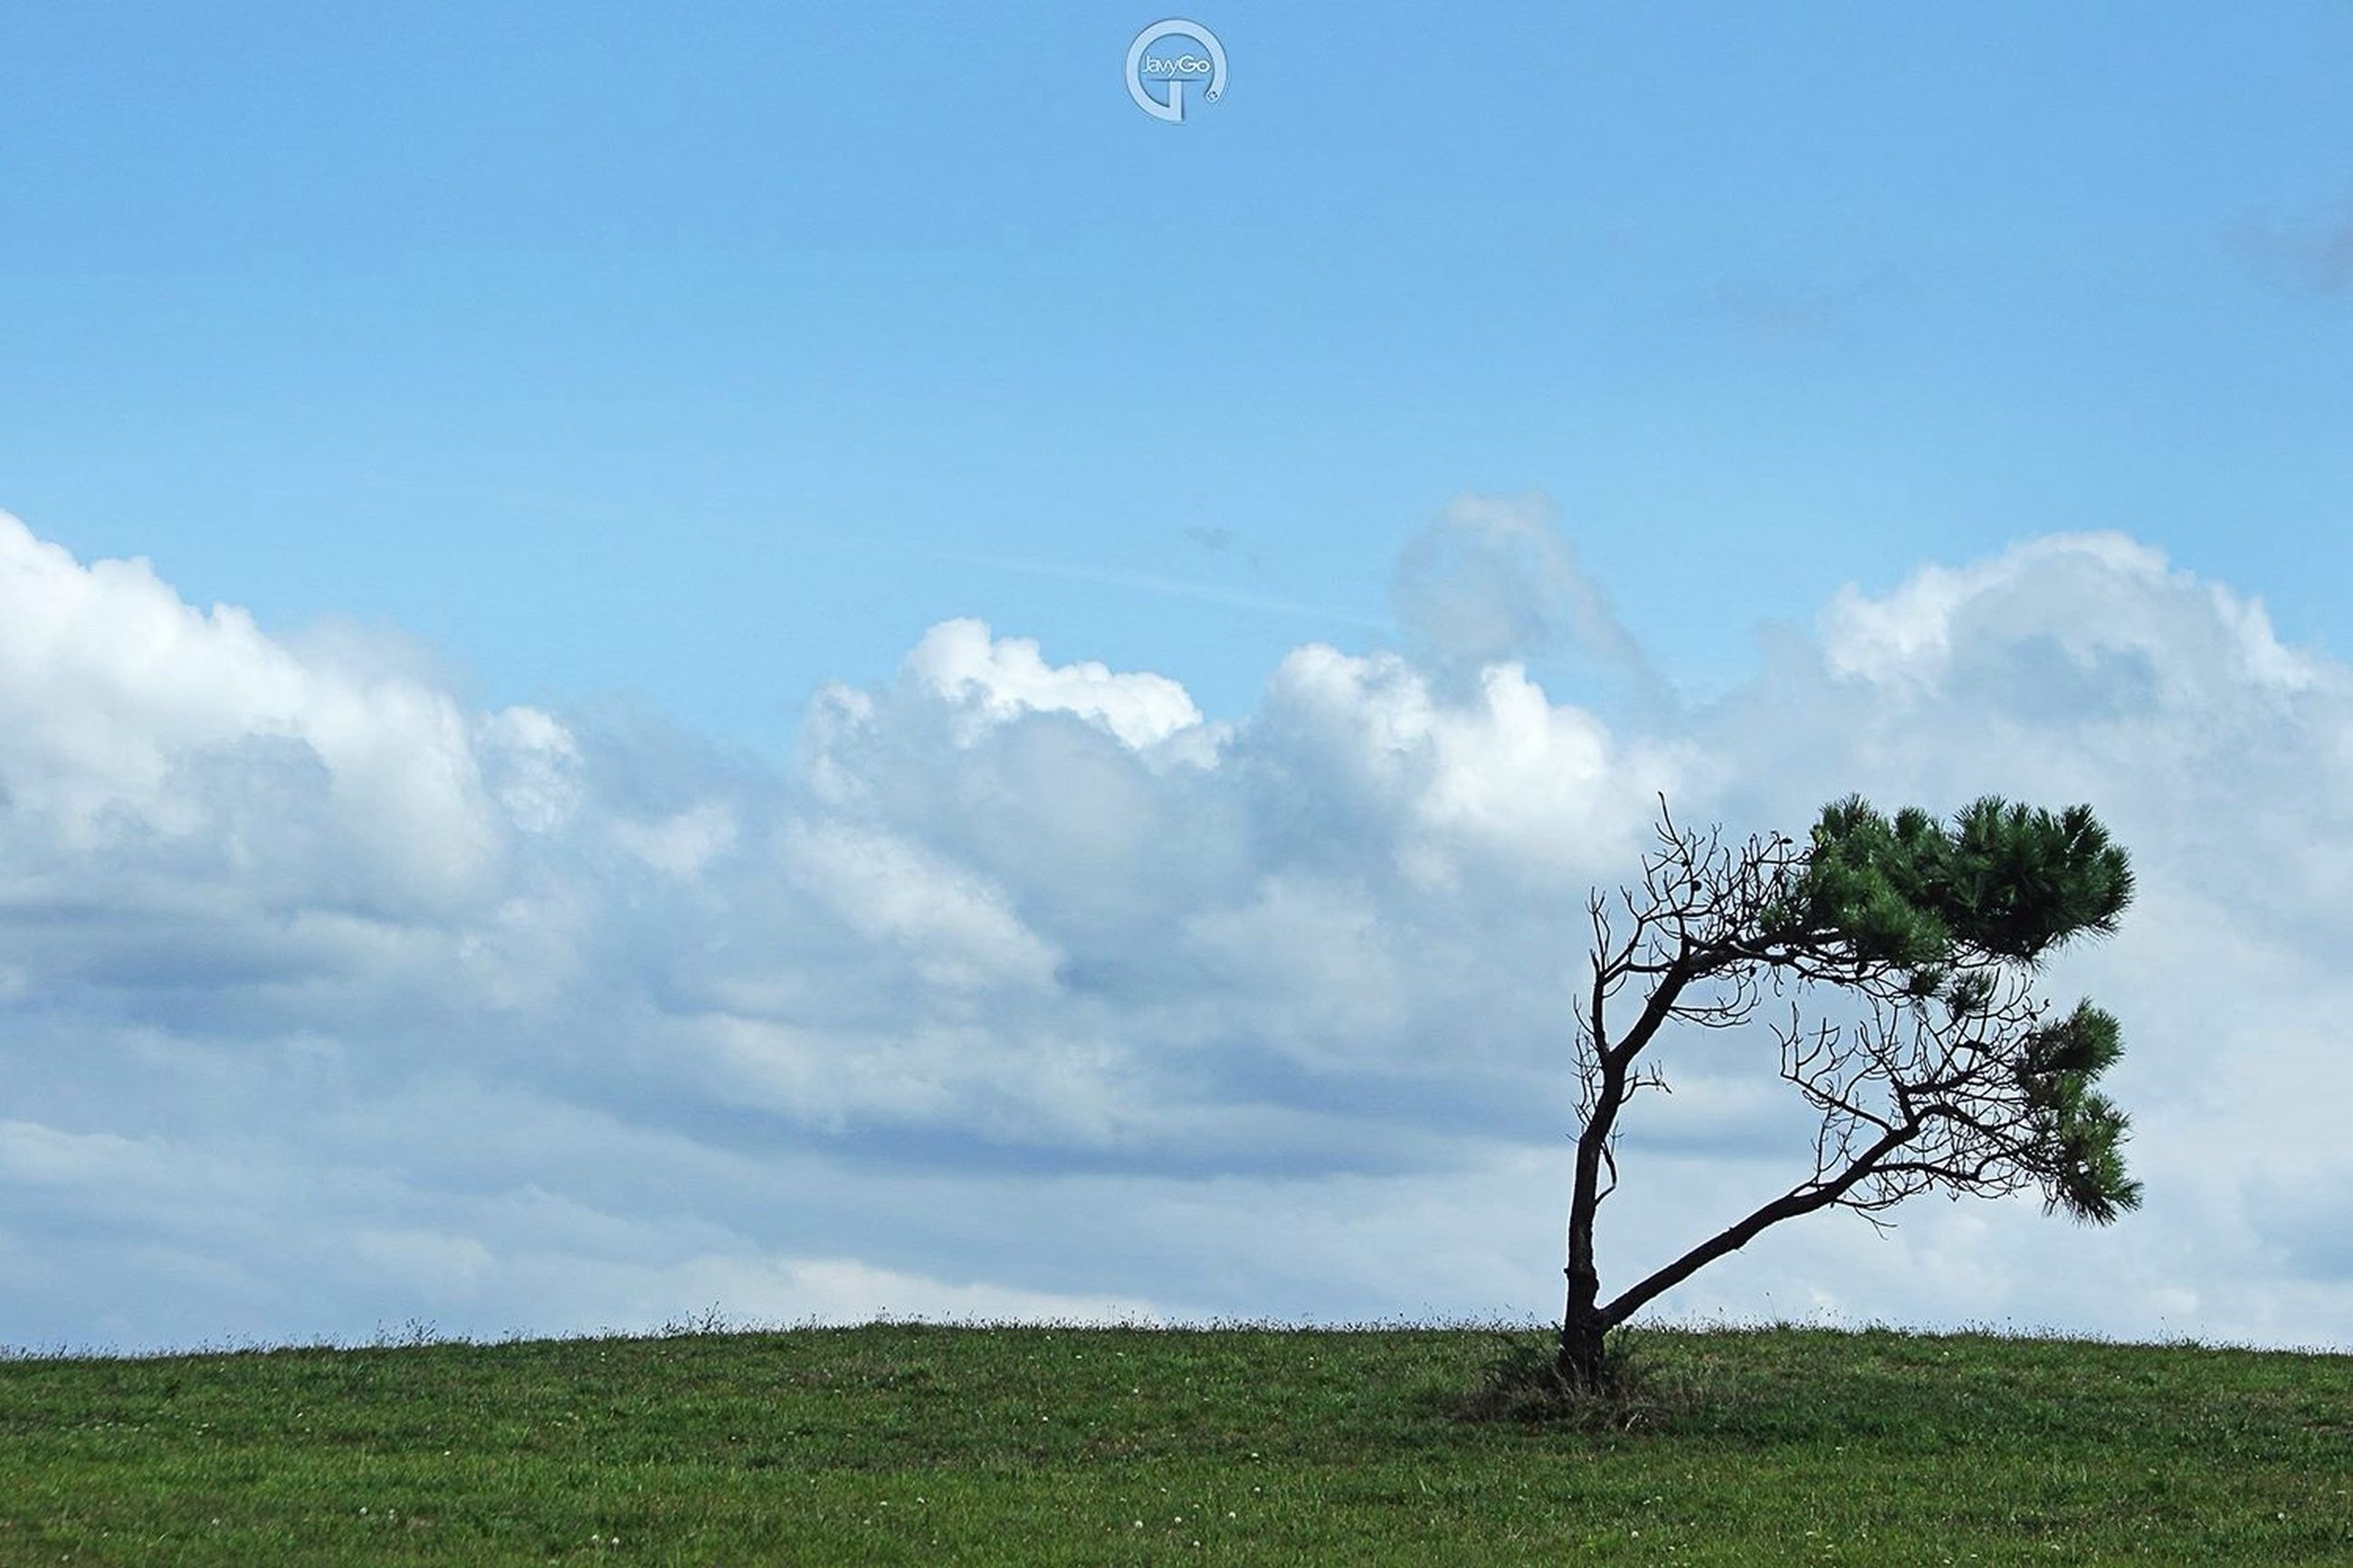 sky, blue, cloud - sky, tranquility, low angle view, nature, tree, cloud, tranquil scene, beauty in nature, scenics, growth, field, day, transportation, green color, outdoors, landscape, no people, grass